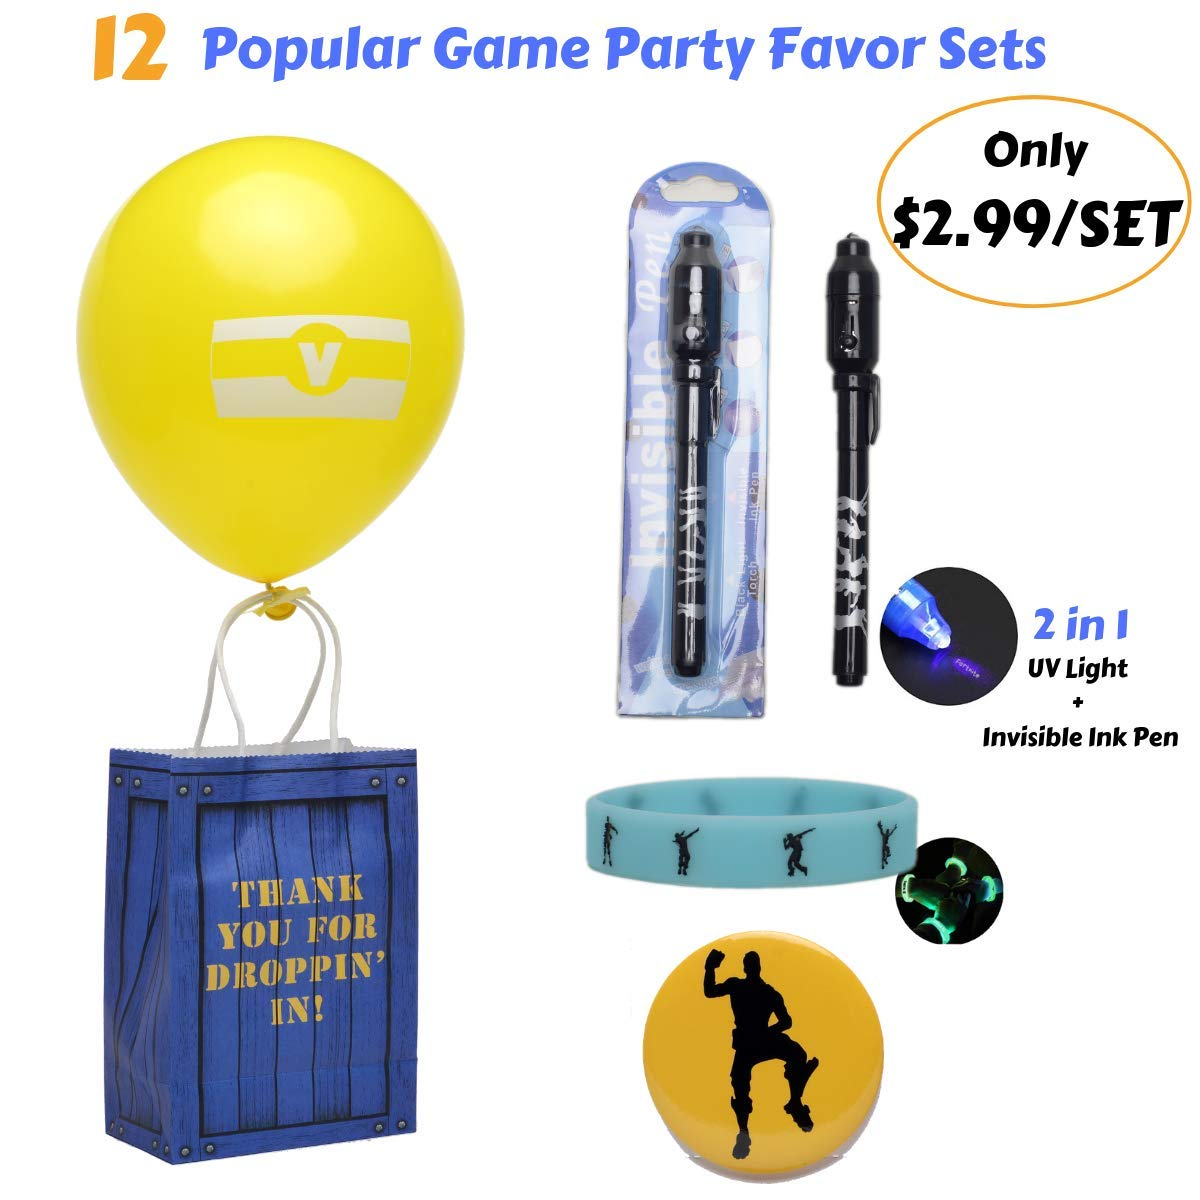 Game Birthday Party Supplies for boys-Birthday Party Favors -12 Sets-12 Invisible Disappearing Ink Pens with UV Light -12 Glow In the Dark Bracelets 13 Button Pins -Birthday Party Supplies Decorations